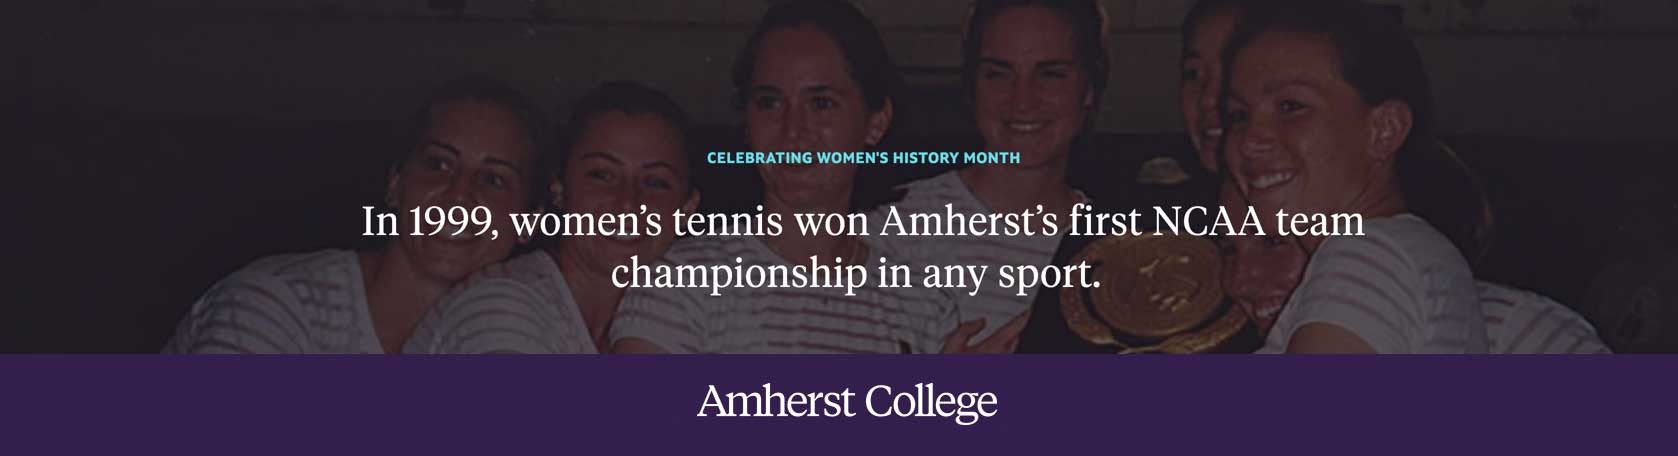 In 1999, women's tennis won Amherst's first NCAA team championship in any sport